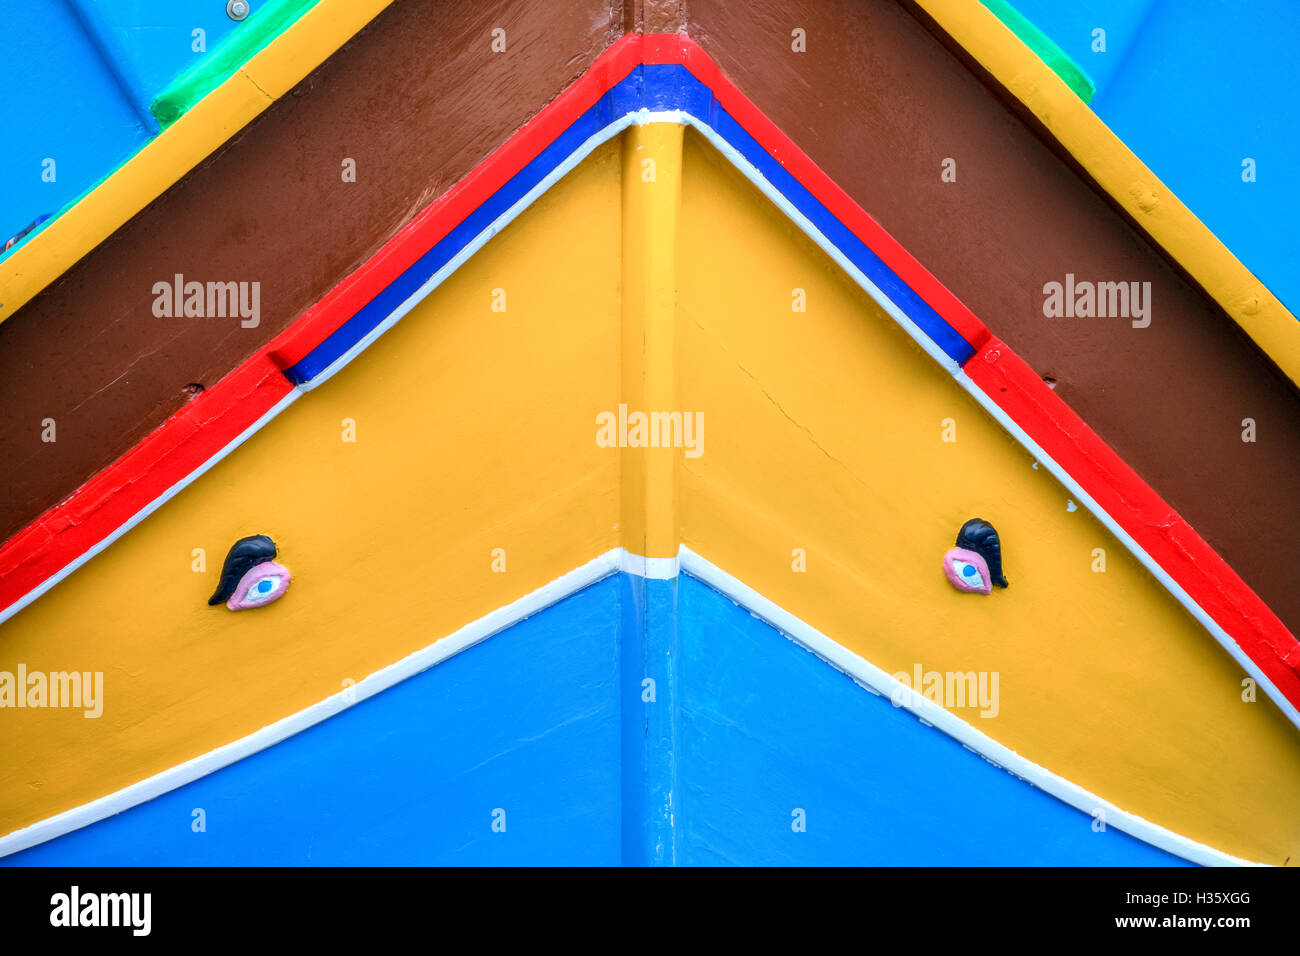 Bow of traditional Maltese fishing boat called Luzzu, with the Eye of Horus or Osiris - Stock Image